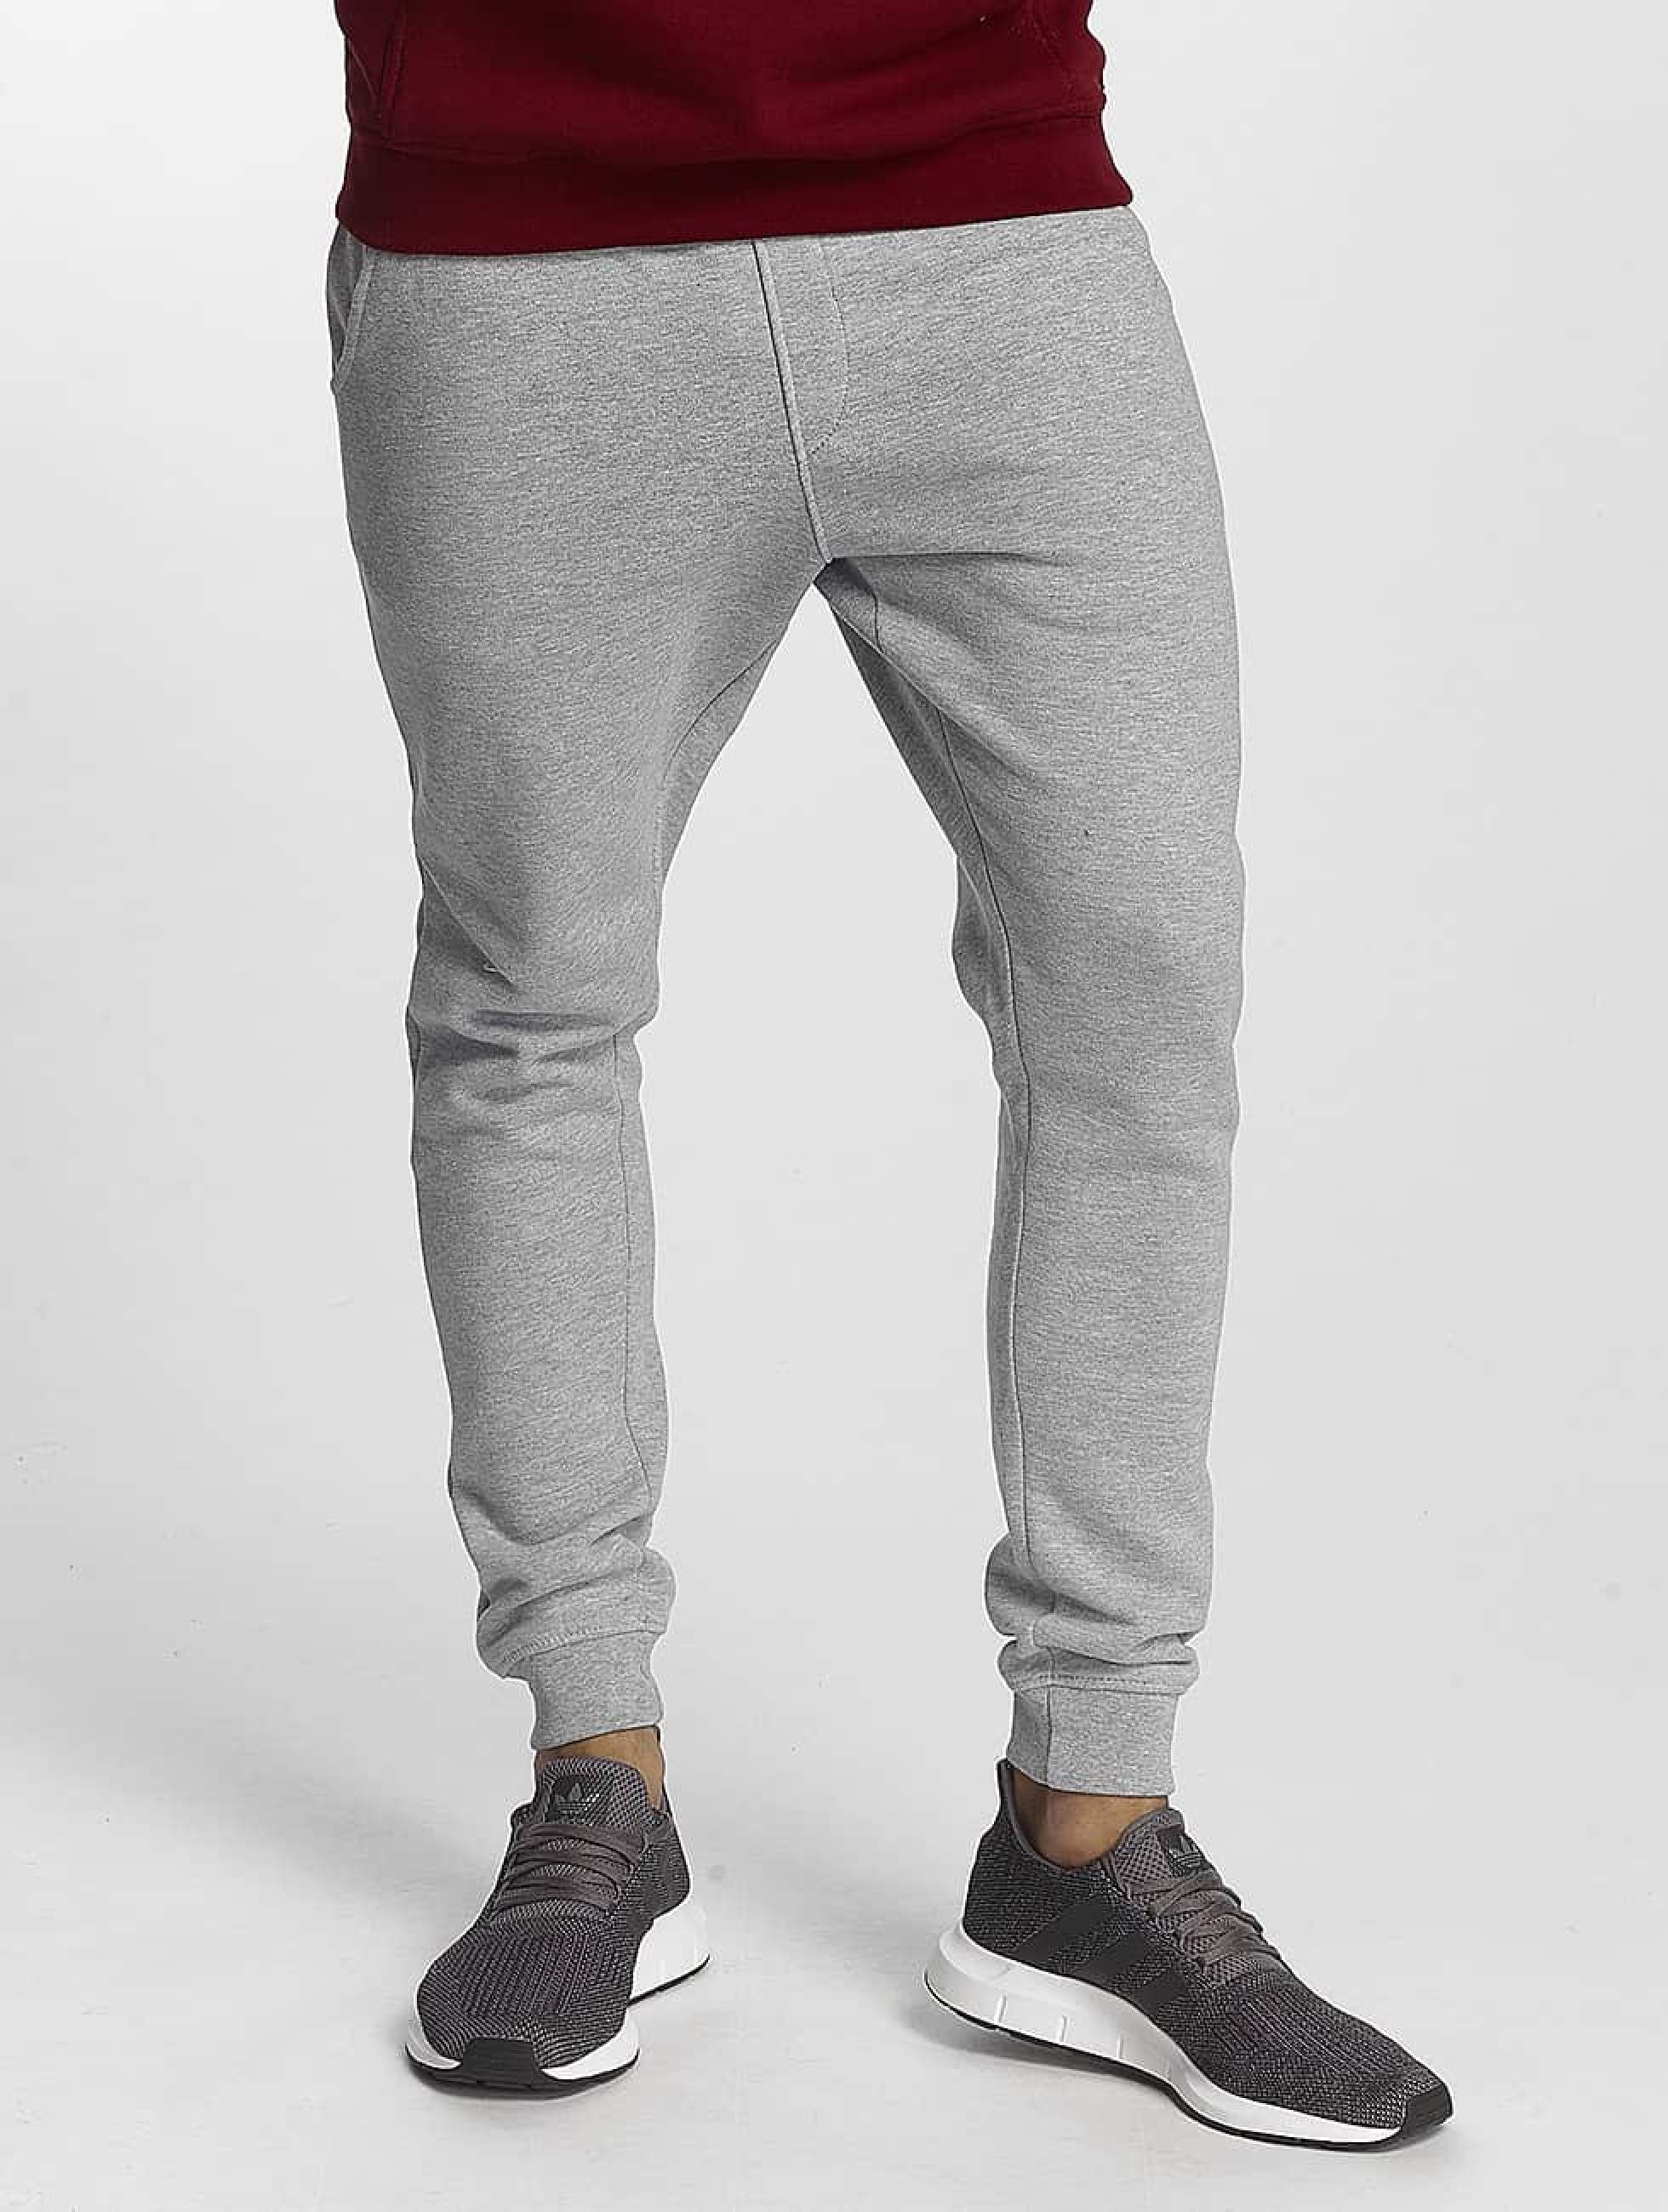 Cyprime / Sweat Pant Lithium in grey L